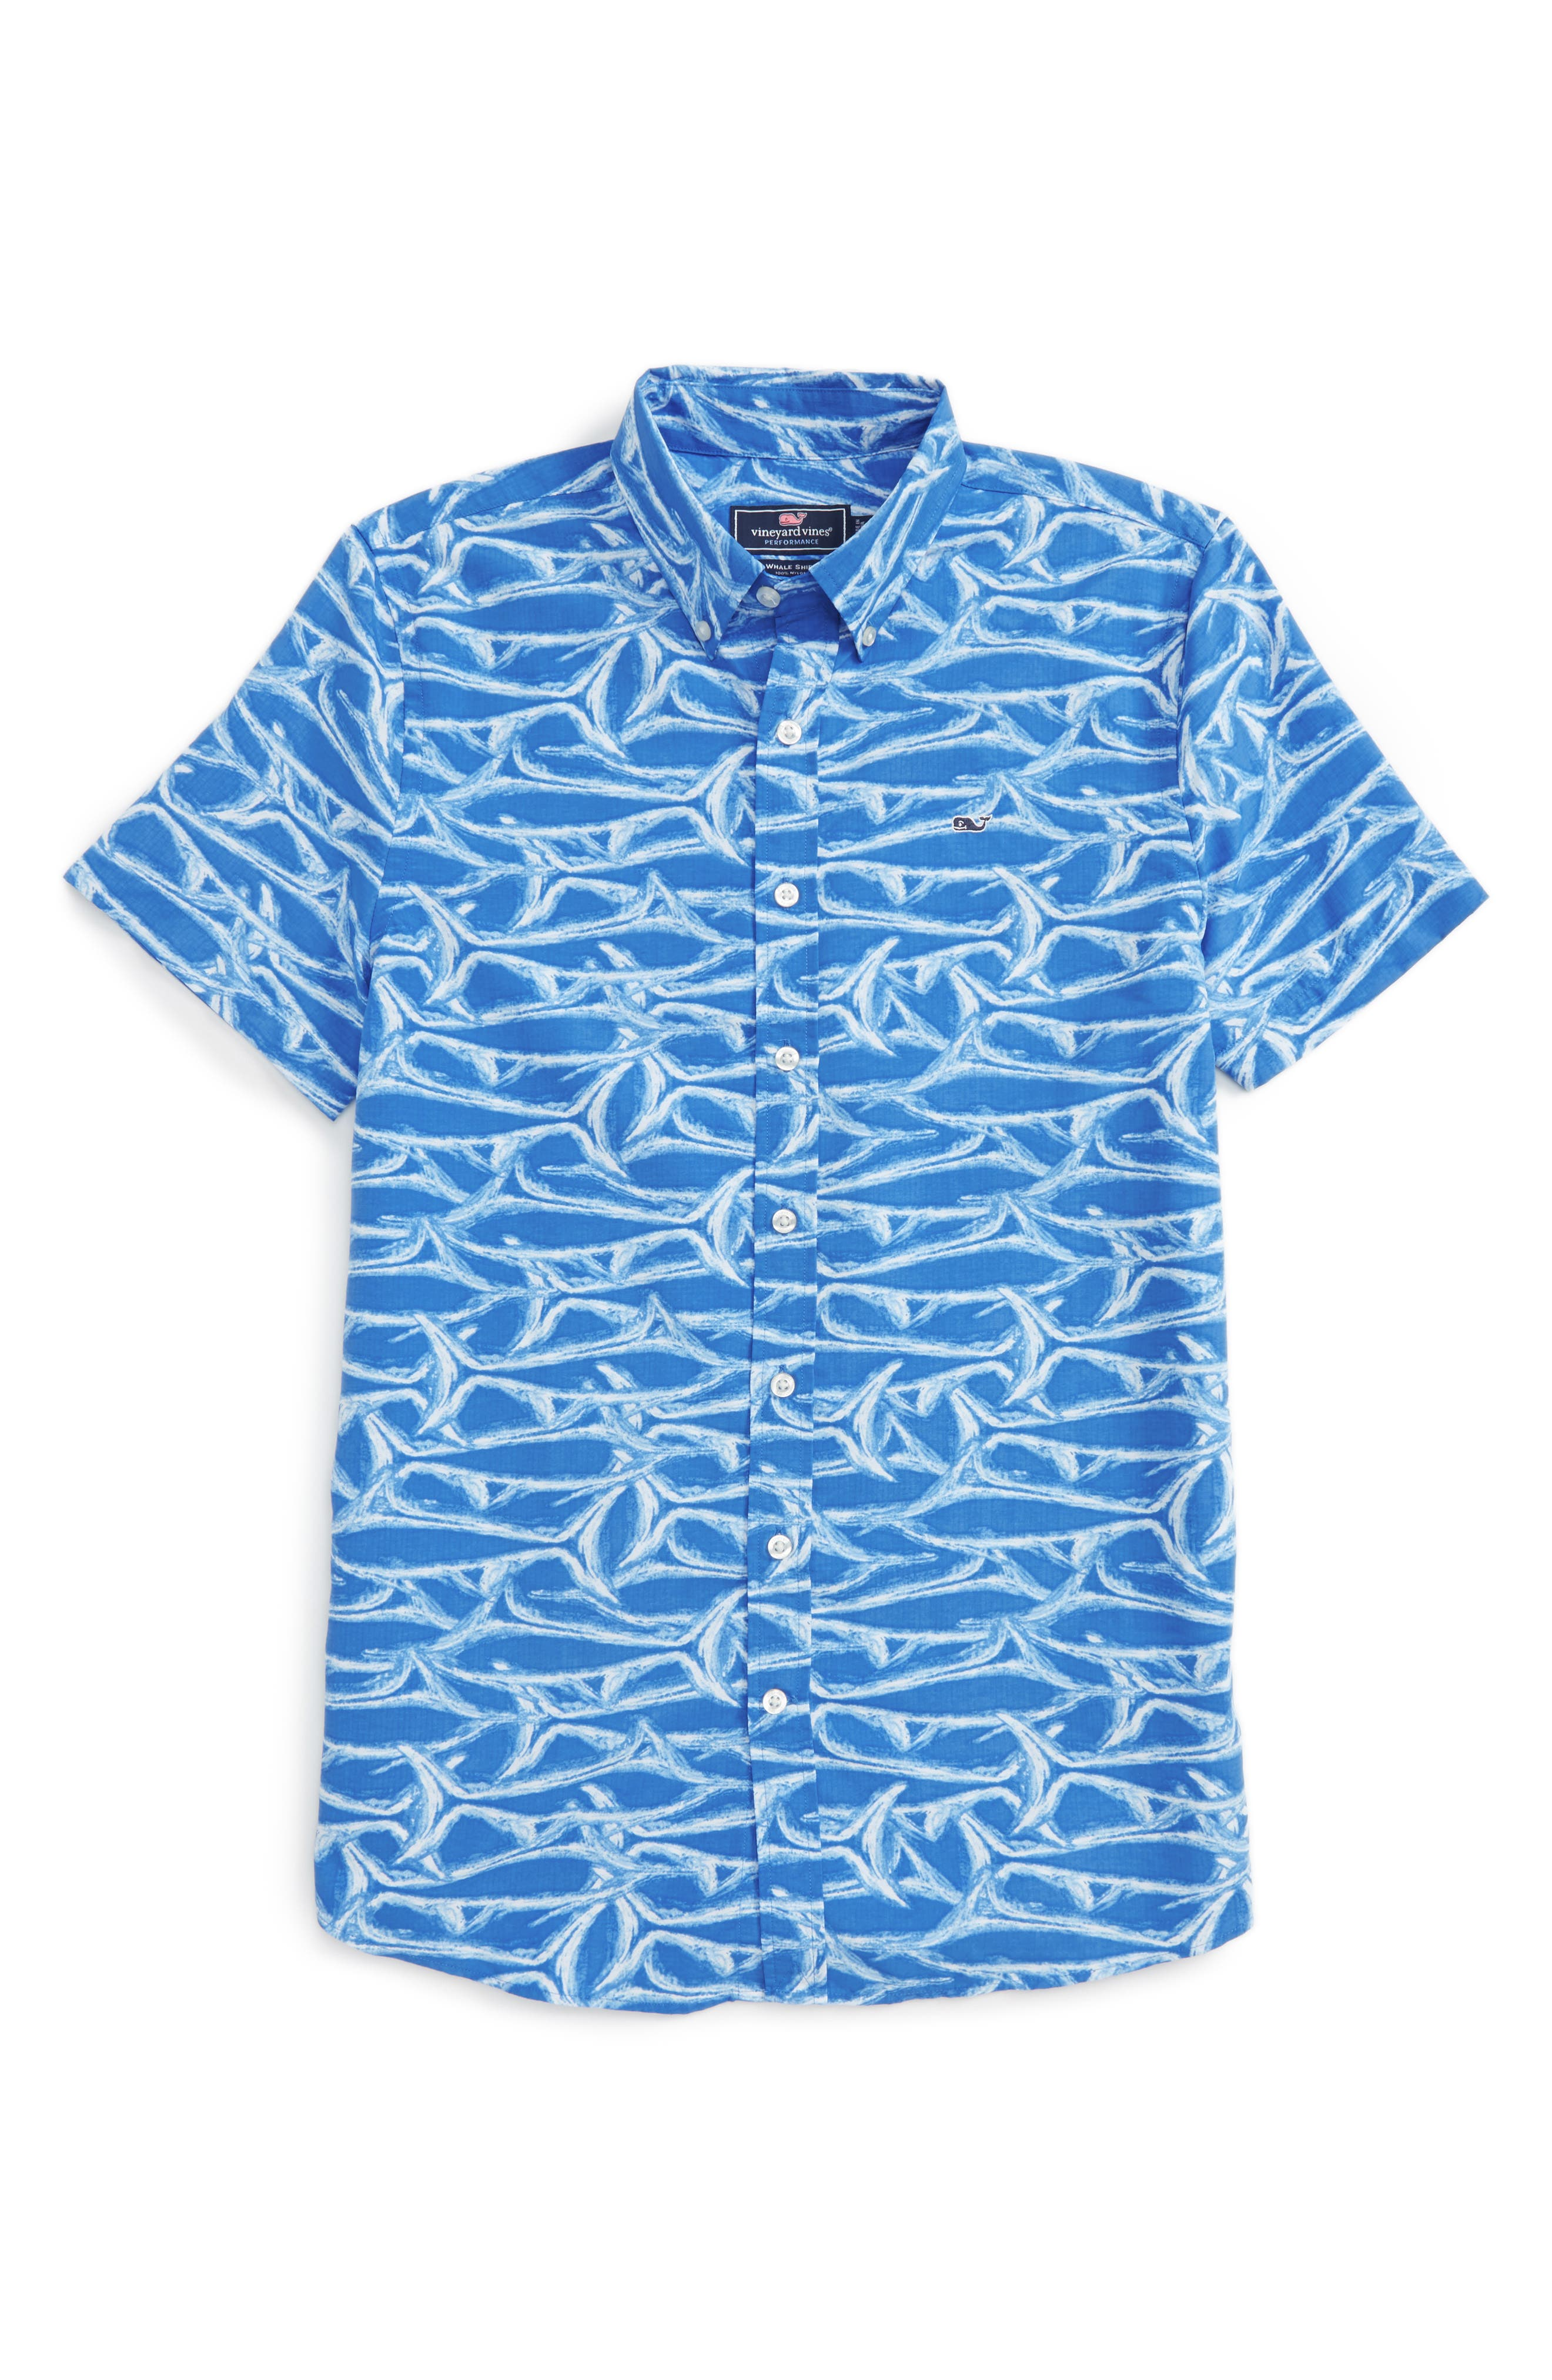 Brushed Marlin Whale Shirt,                         Main,                         color, 406